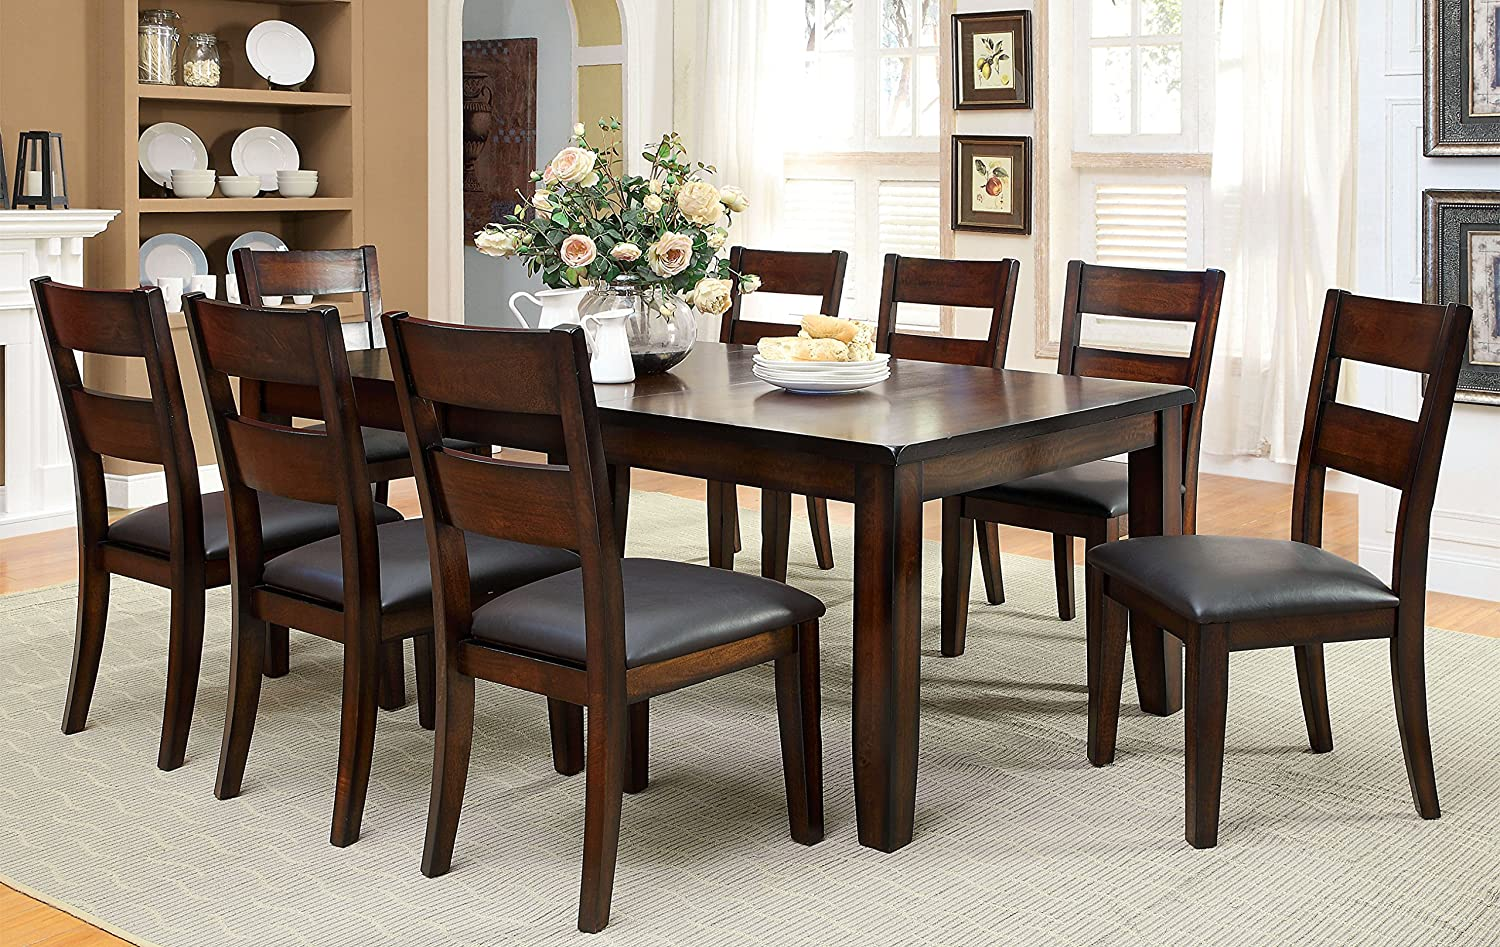 Amazon.com - Furniture of America Dallas 9-Piece Transitional Dining Set Dark Cherry - Table \u0026 Chair Sets & Amazon.com - Furniture of America Dallas 9-Piece Transitional Dining ...